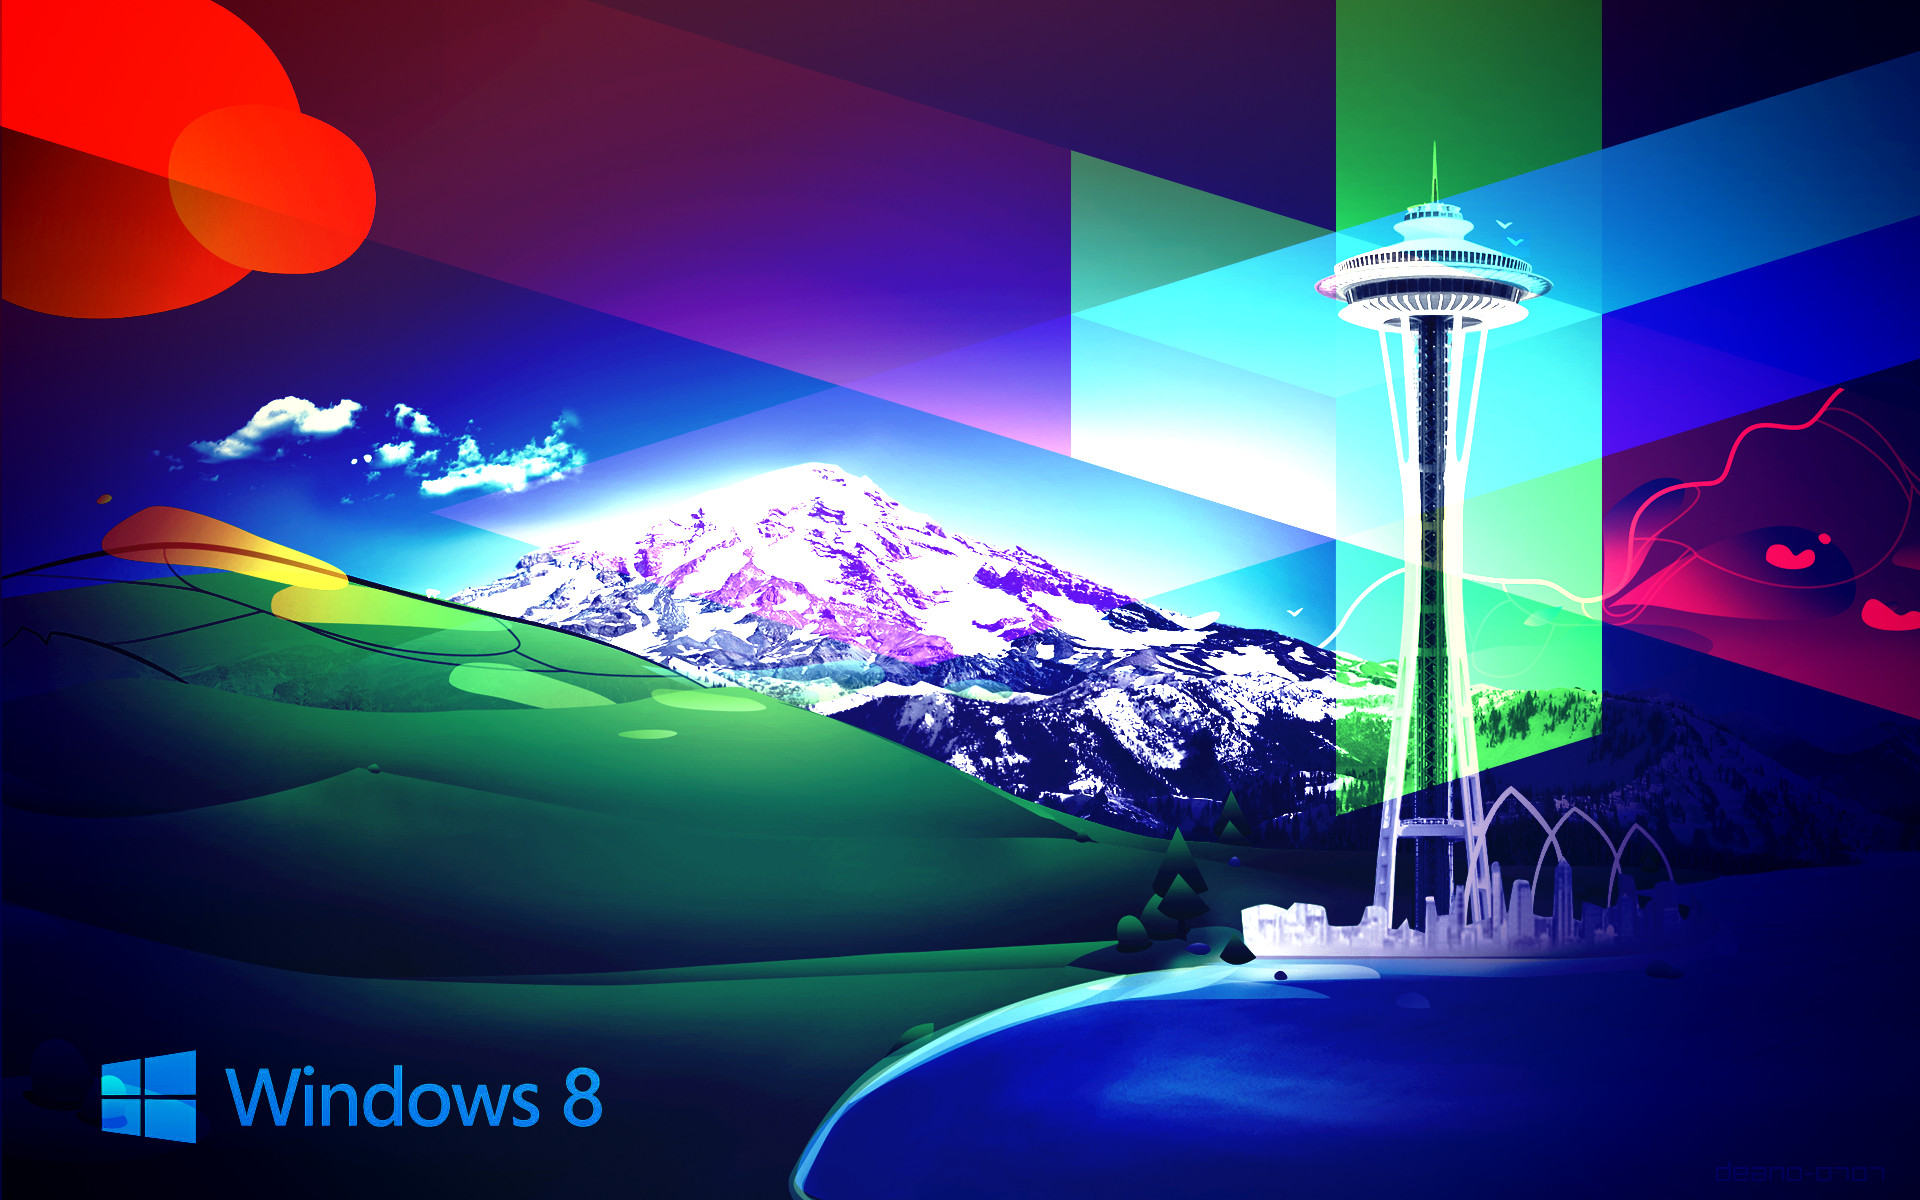 1920x1200 Windows 8 Wallpaper 6 Windows 8 Wallpaper 5 ...